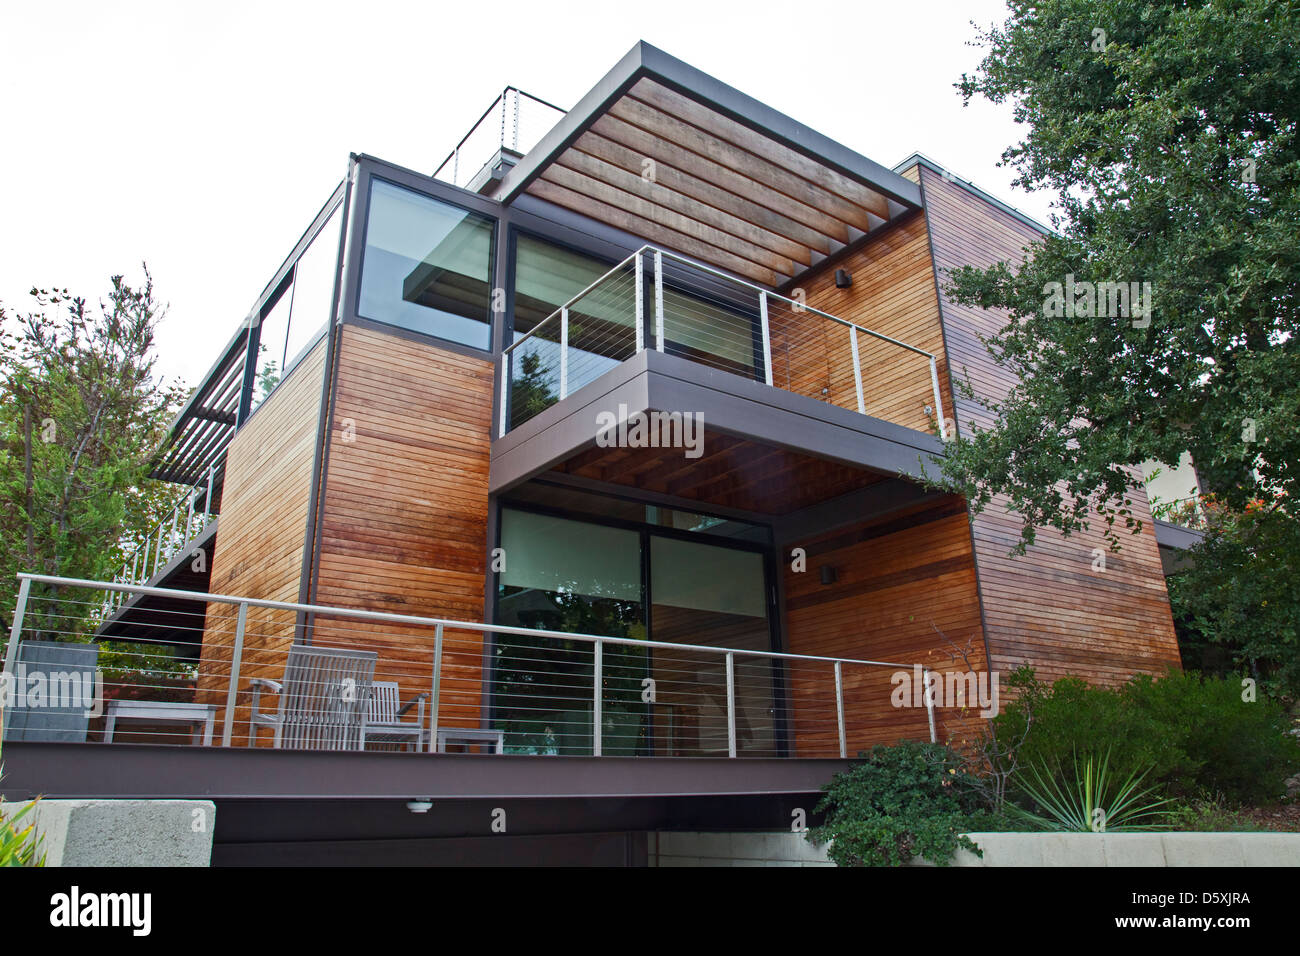 Superb A Multi Level, Prefab, Modular Green Home By The Company LivingHomes And  Consists Of 11 Modular Sections. Santa Monica, CA